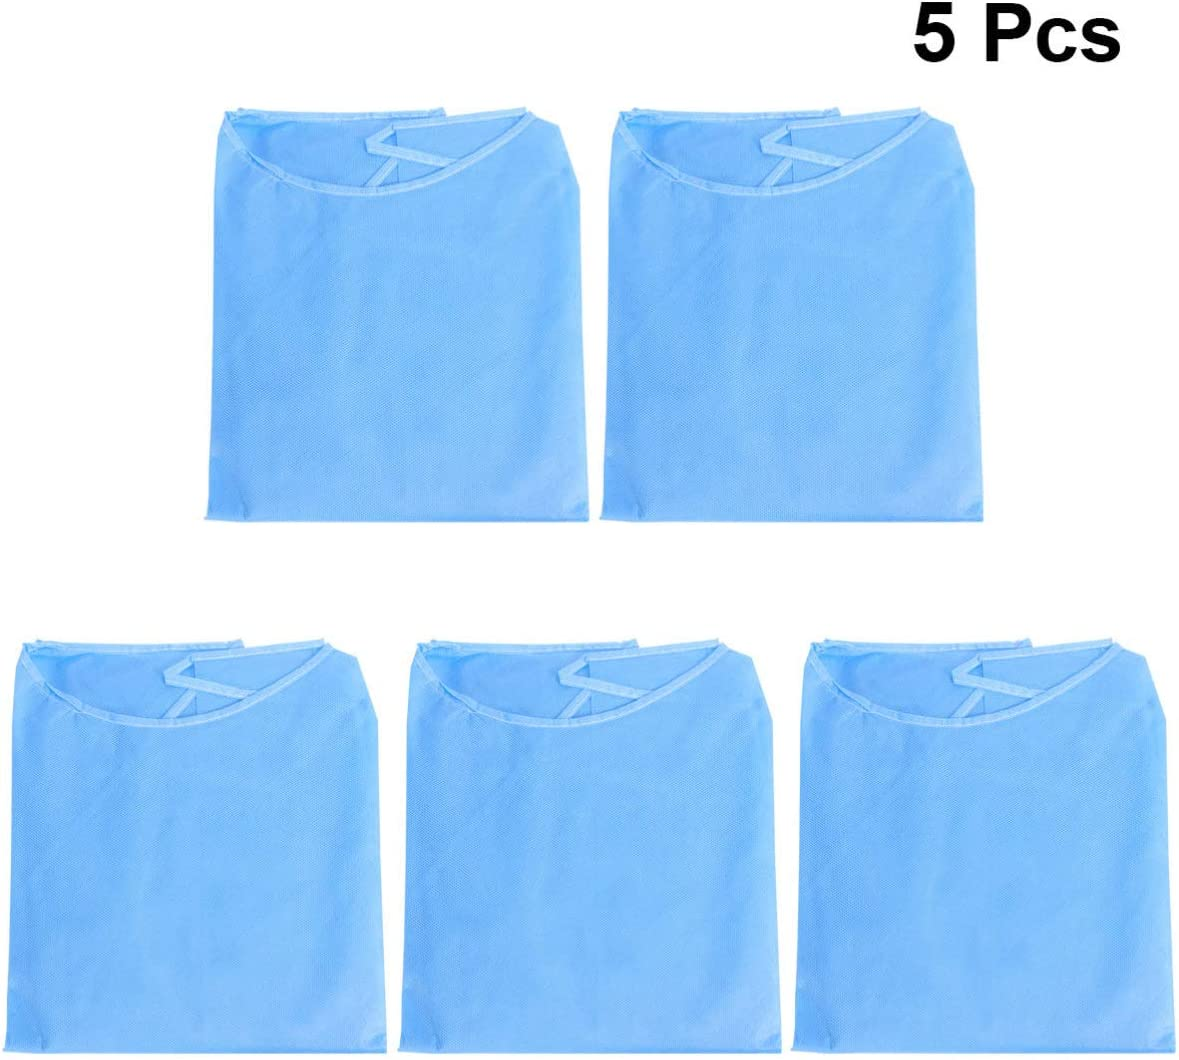 Disposable Overalls Apron Clothing Adjustable Dust-proof Protection Clothes with Elastic Wrists 5pcs